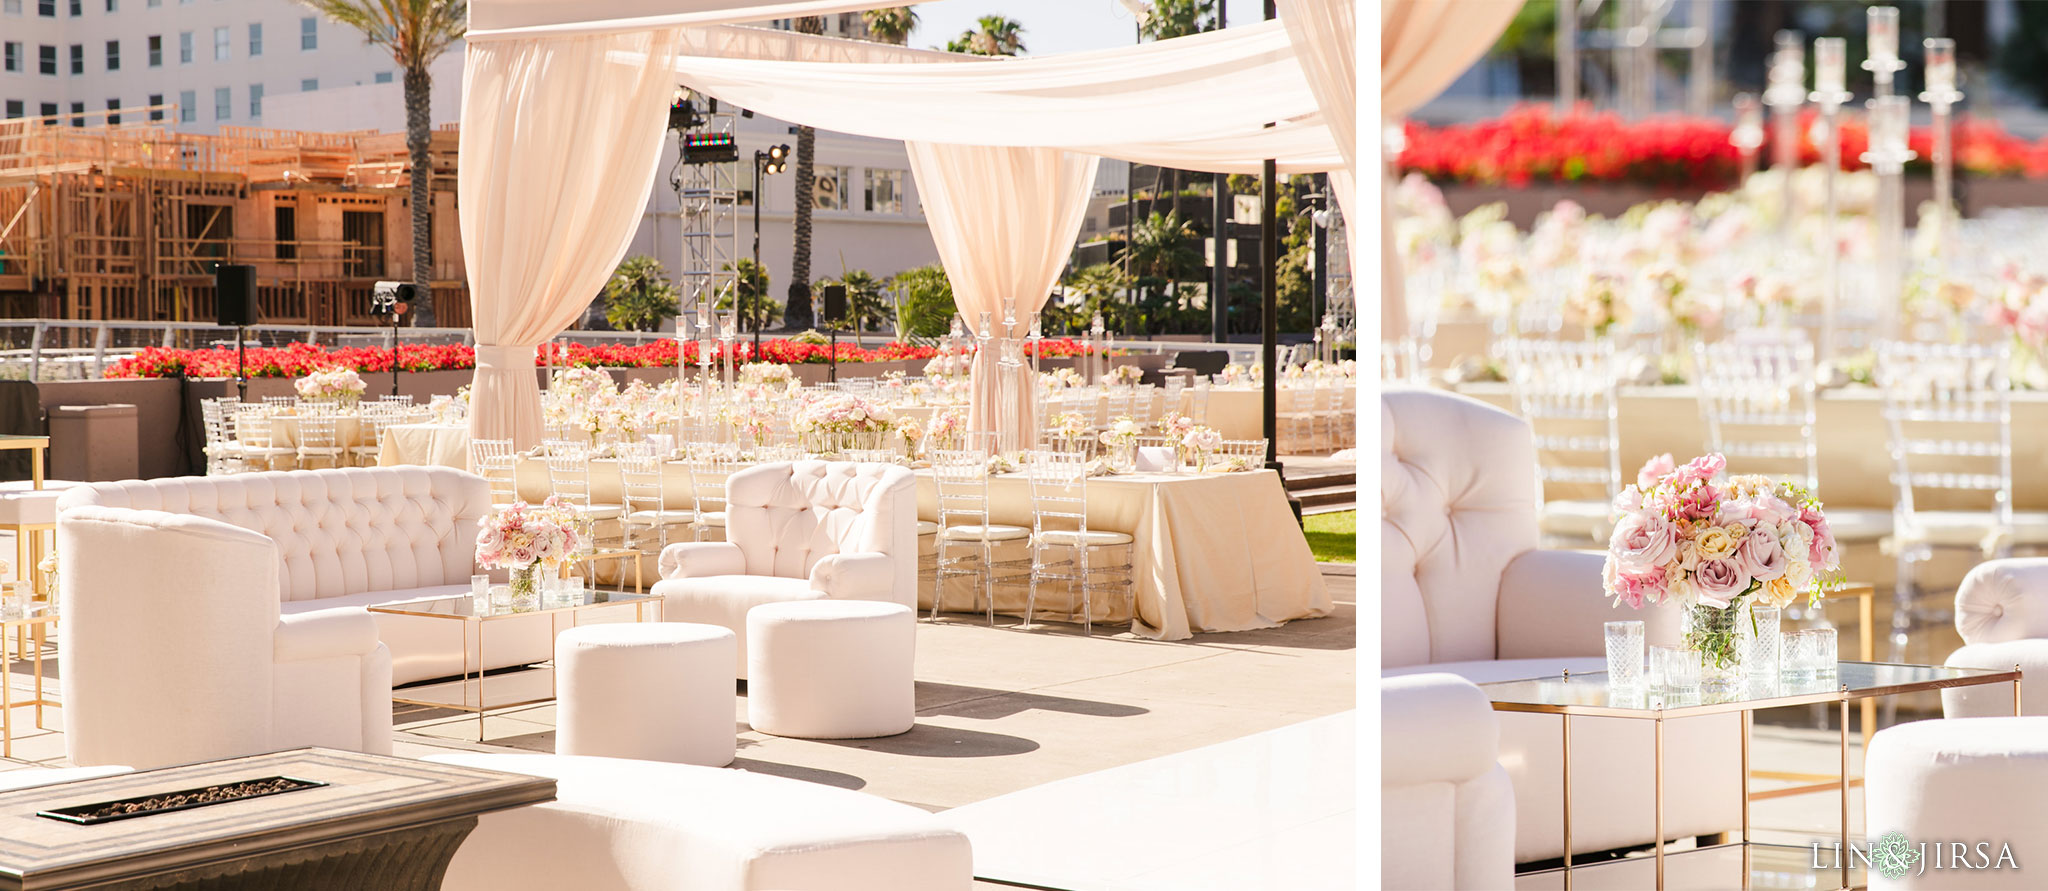 051 Long Beach Performing Arts Center Indian Wedding Reception Photography